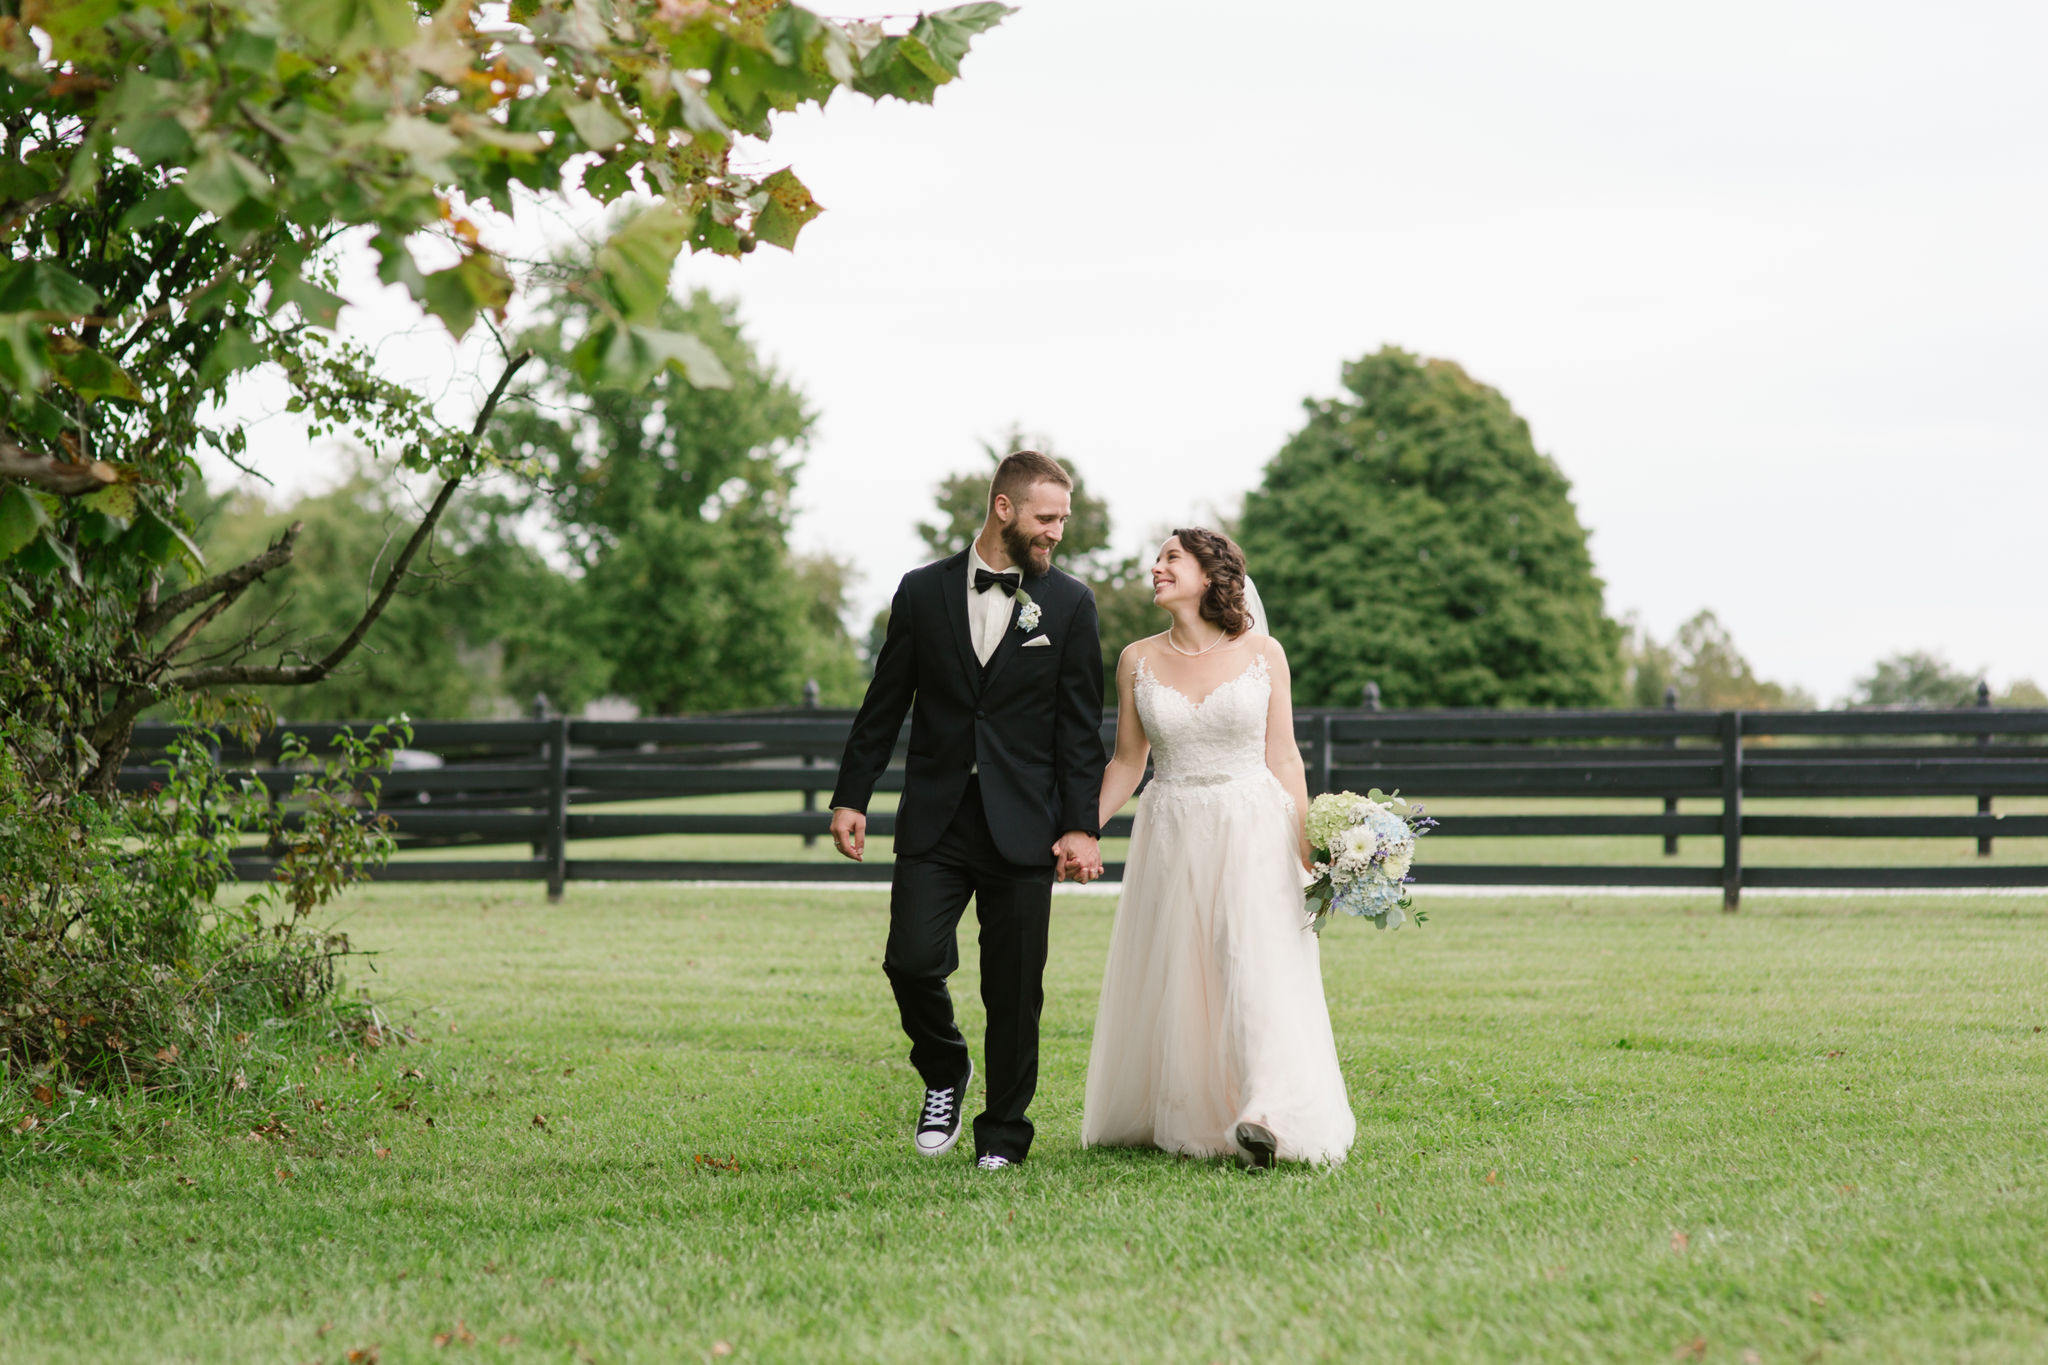 Kellsey&JasonWedding(Final)-261.jpg